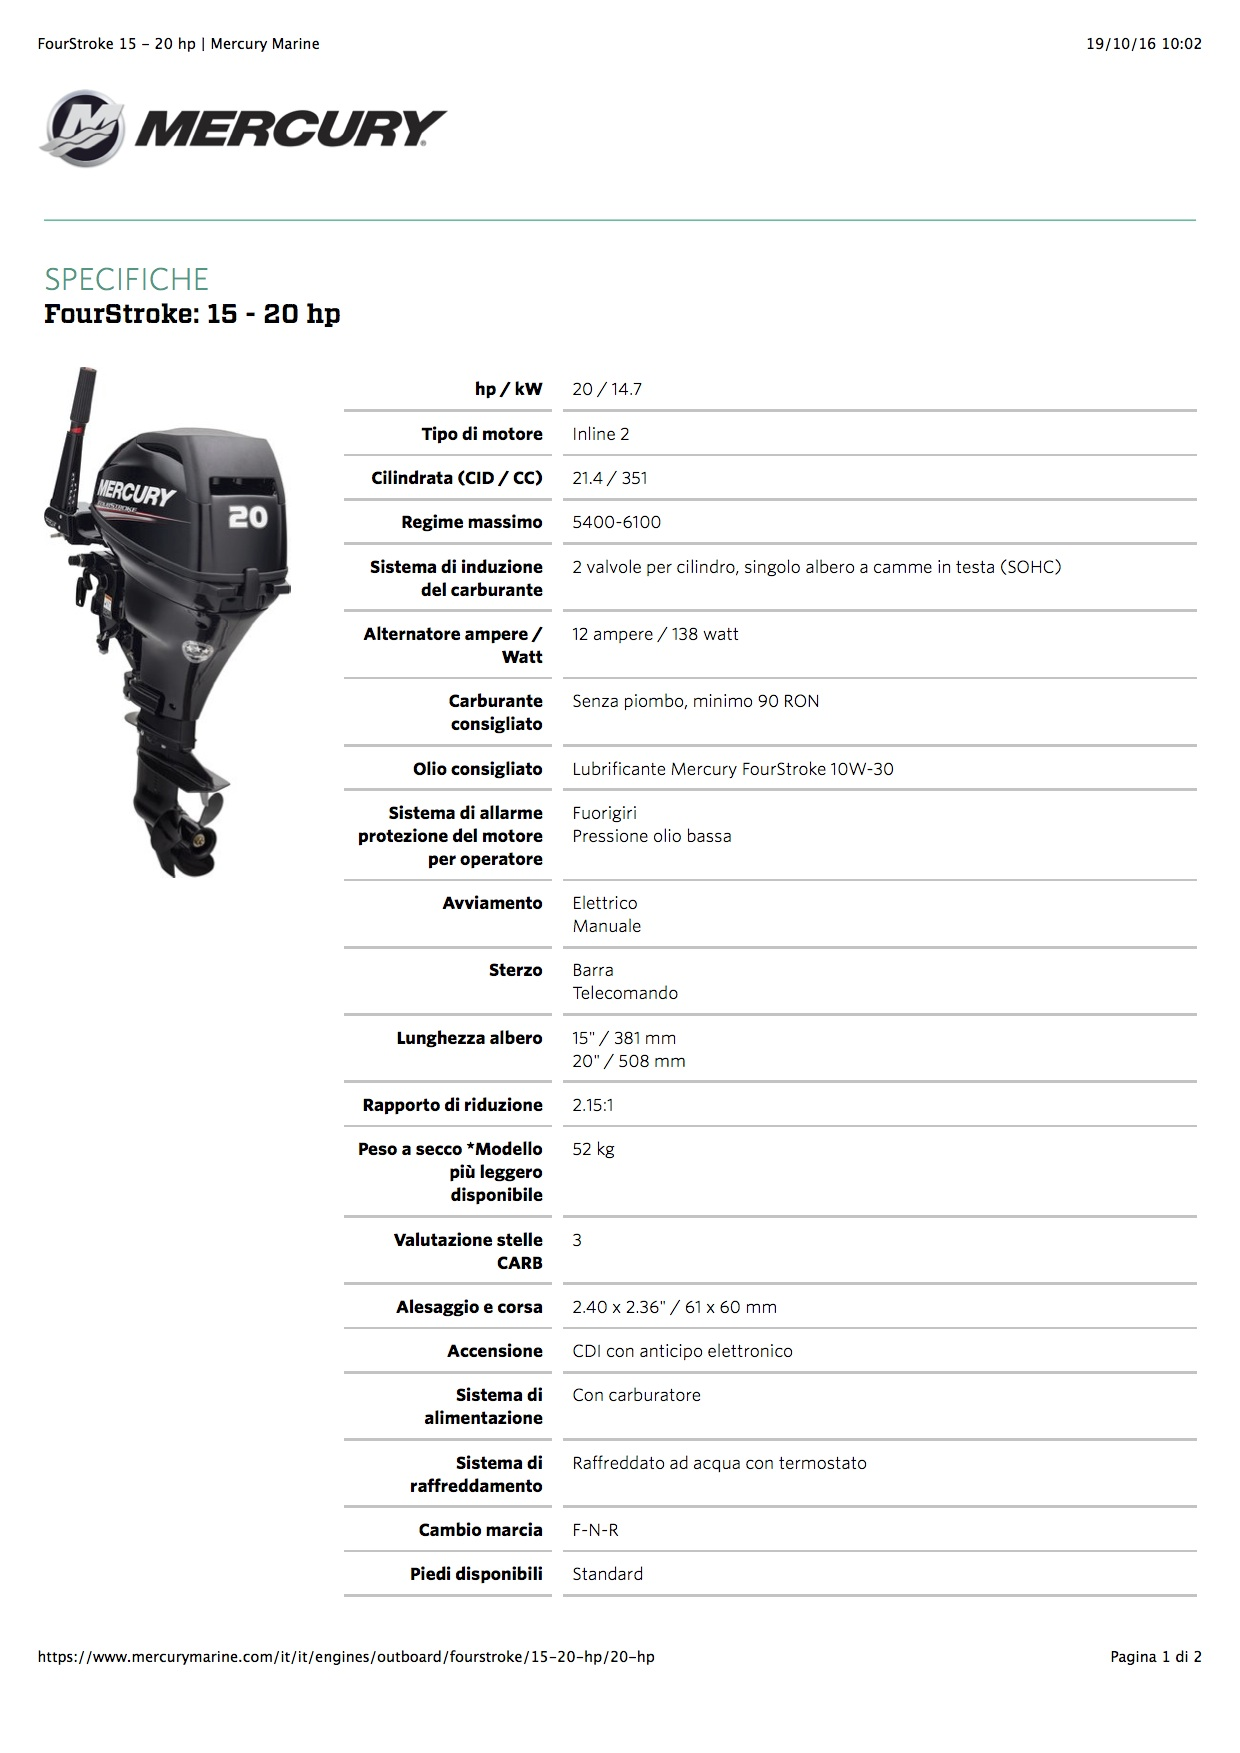 fourstroke-15-20-hp-mercury-marine